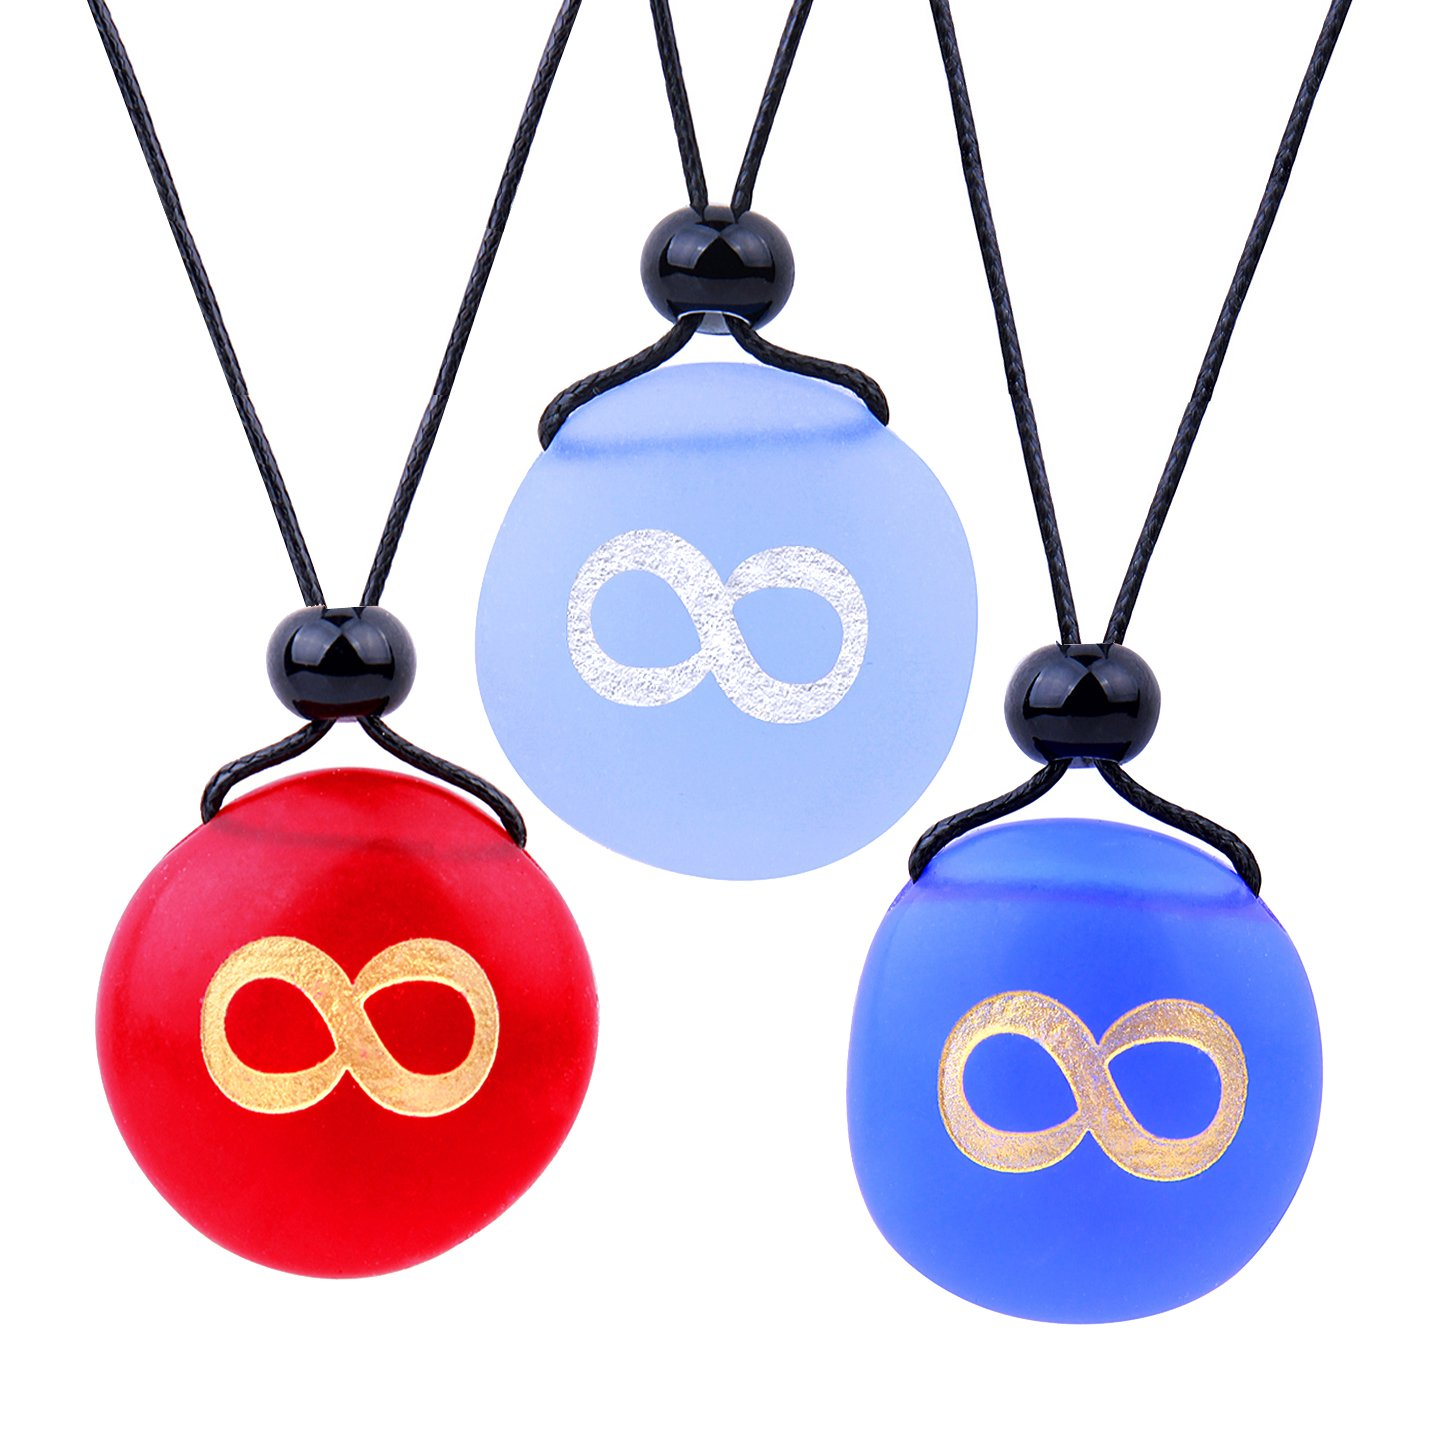 Frosted Sea Glass Stones Infinity Eternity Energy Best Friends BFF Amulets Royal Sky Blue Red Necklaces